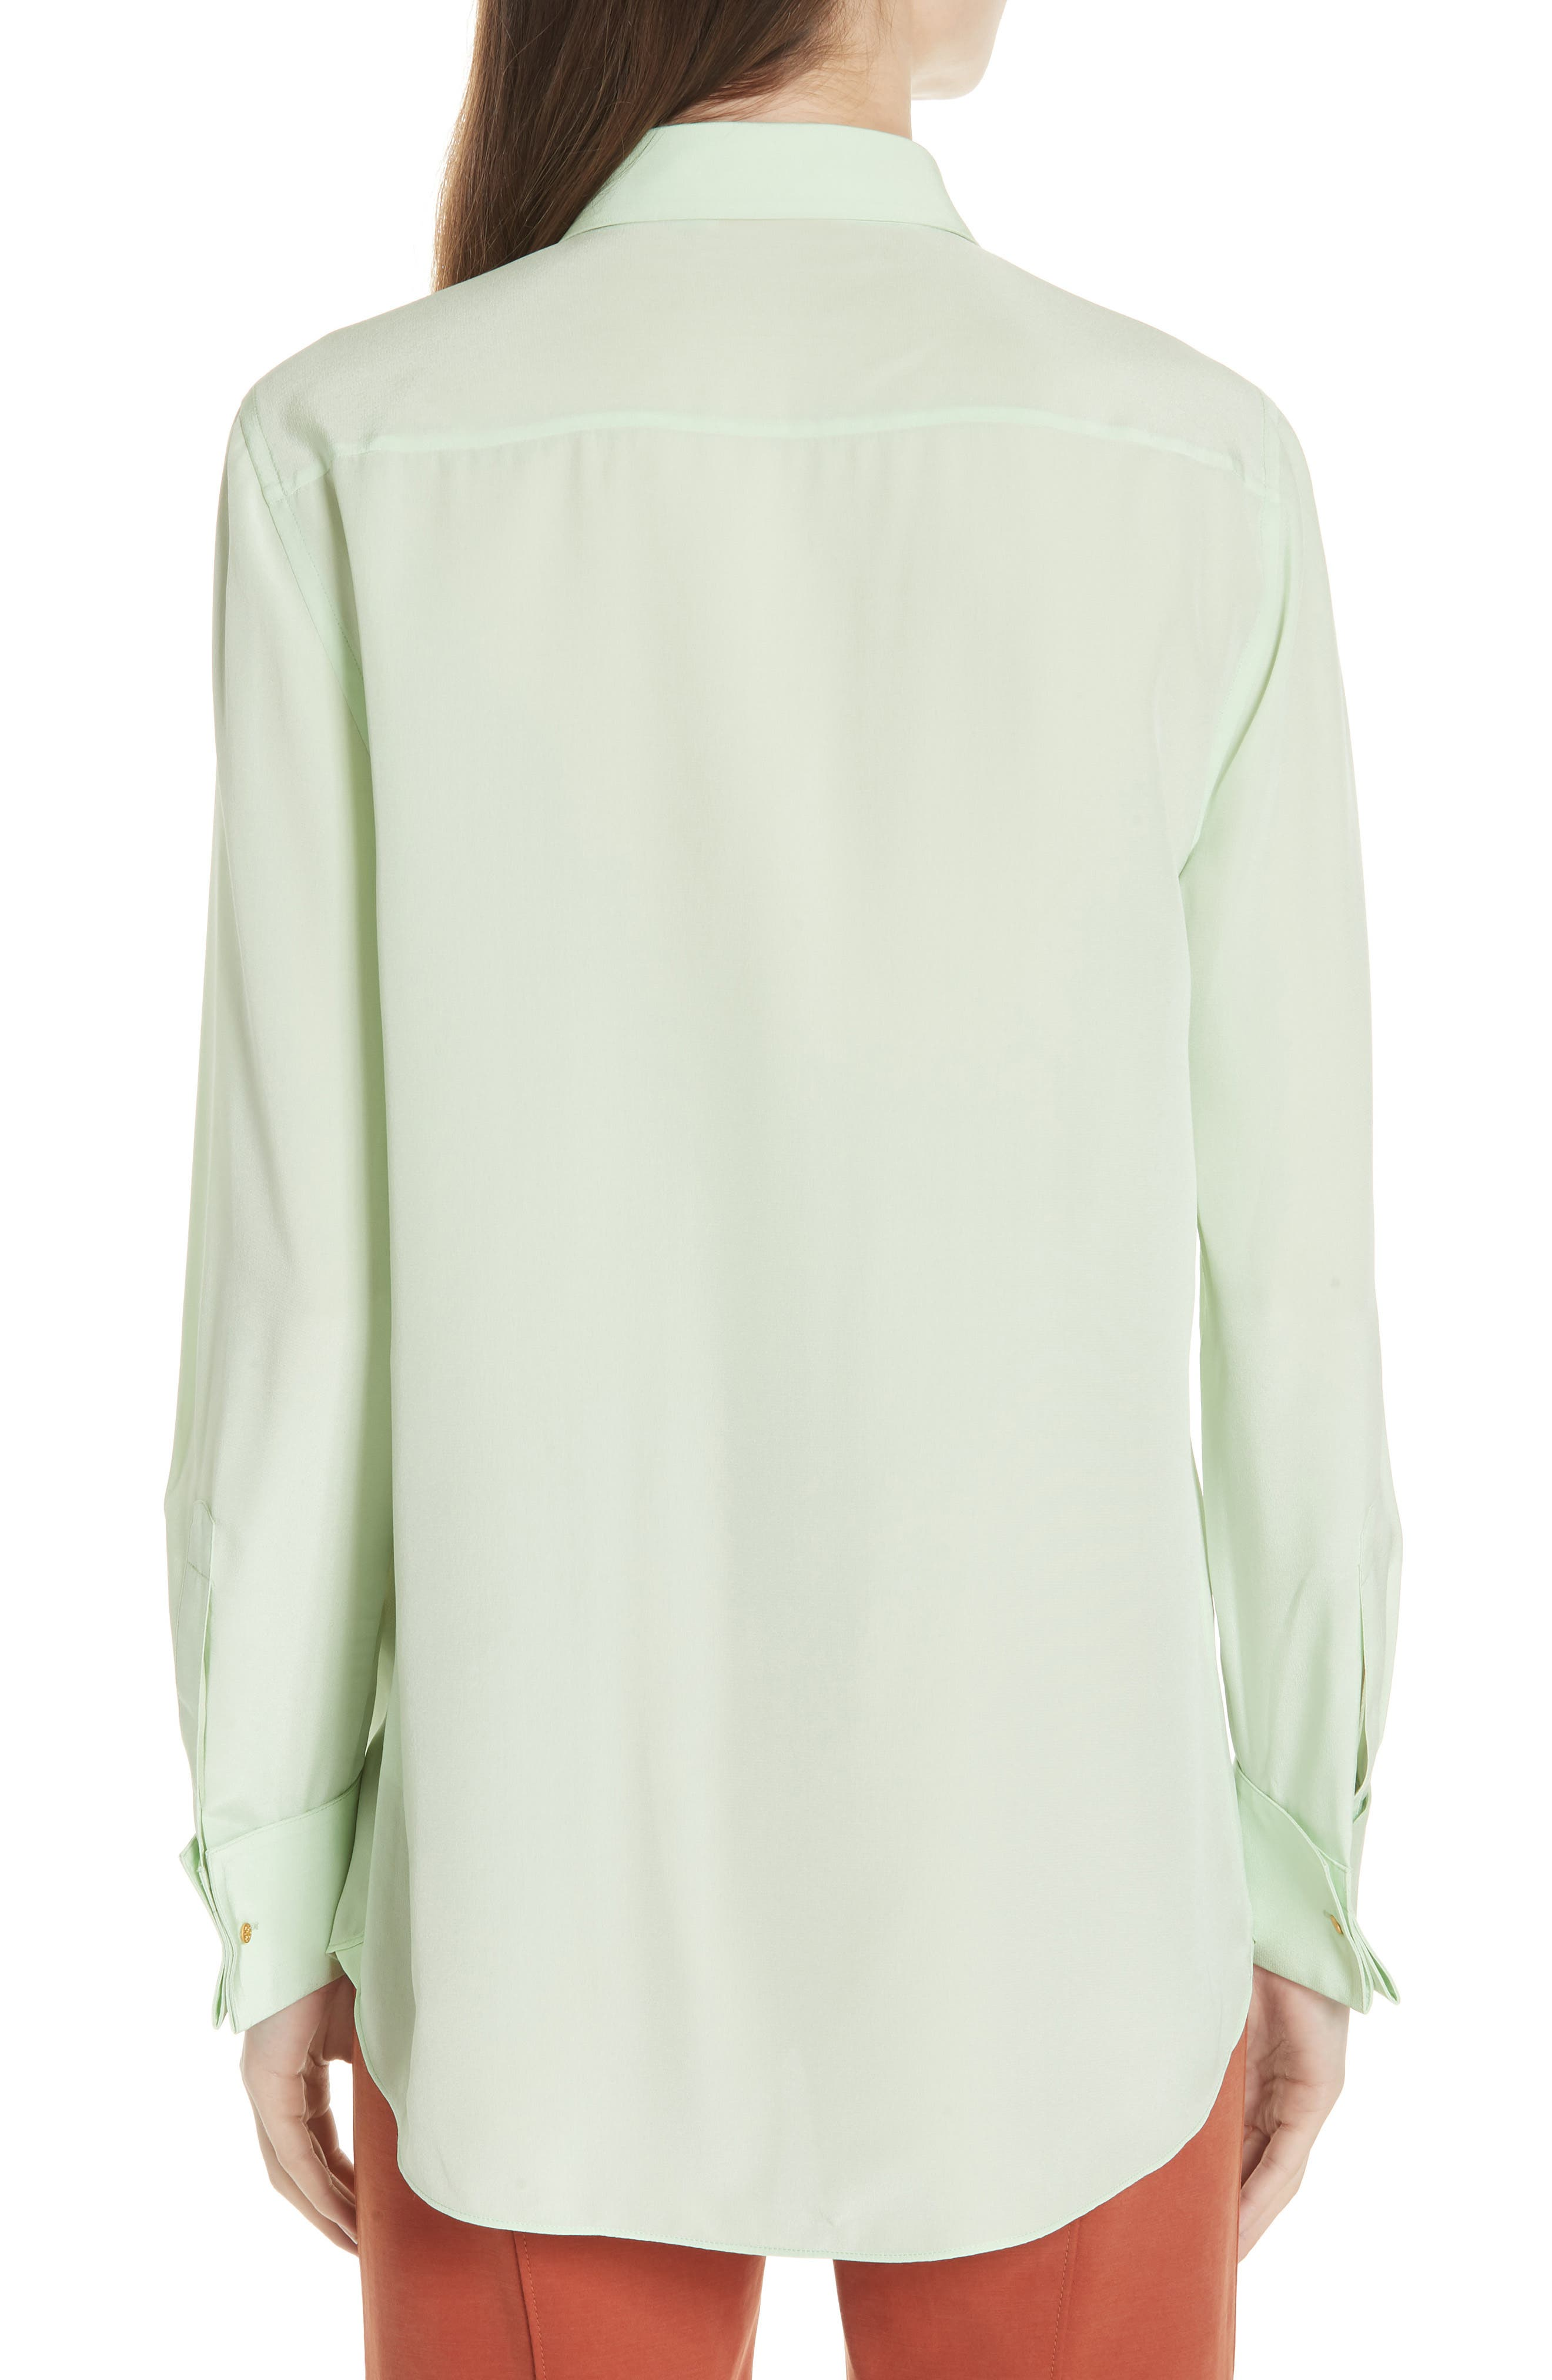 TORY BURCH,                             Janet Silk Top,                             Alternate thumbnail 2, color,                             338